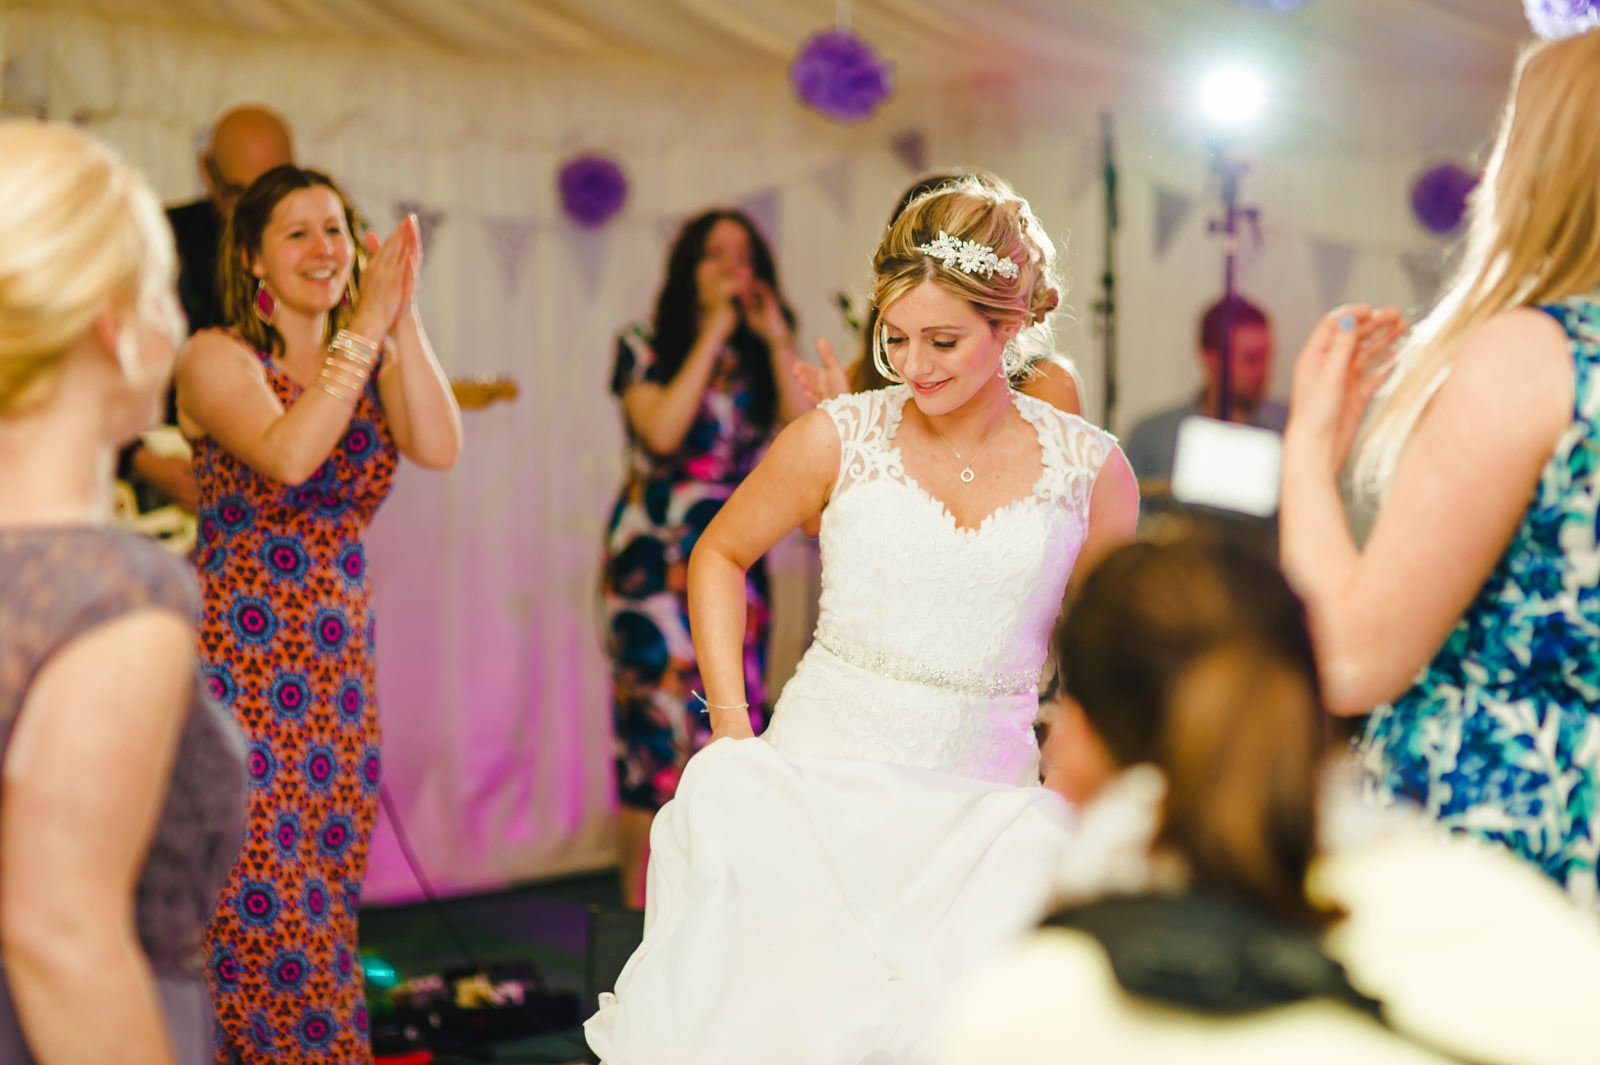 millers of netley wedding 108 - Millers Of Netley wedding, Dorrington, Shrewsbury | Emma + Ben